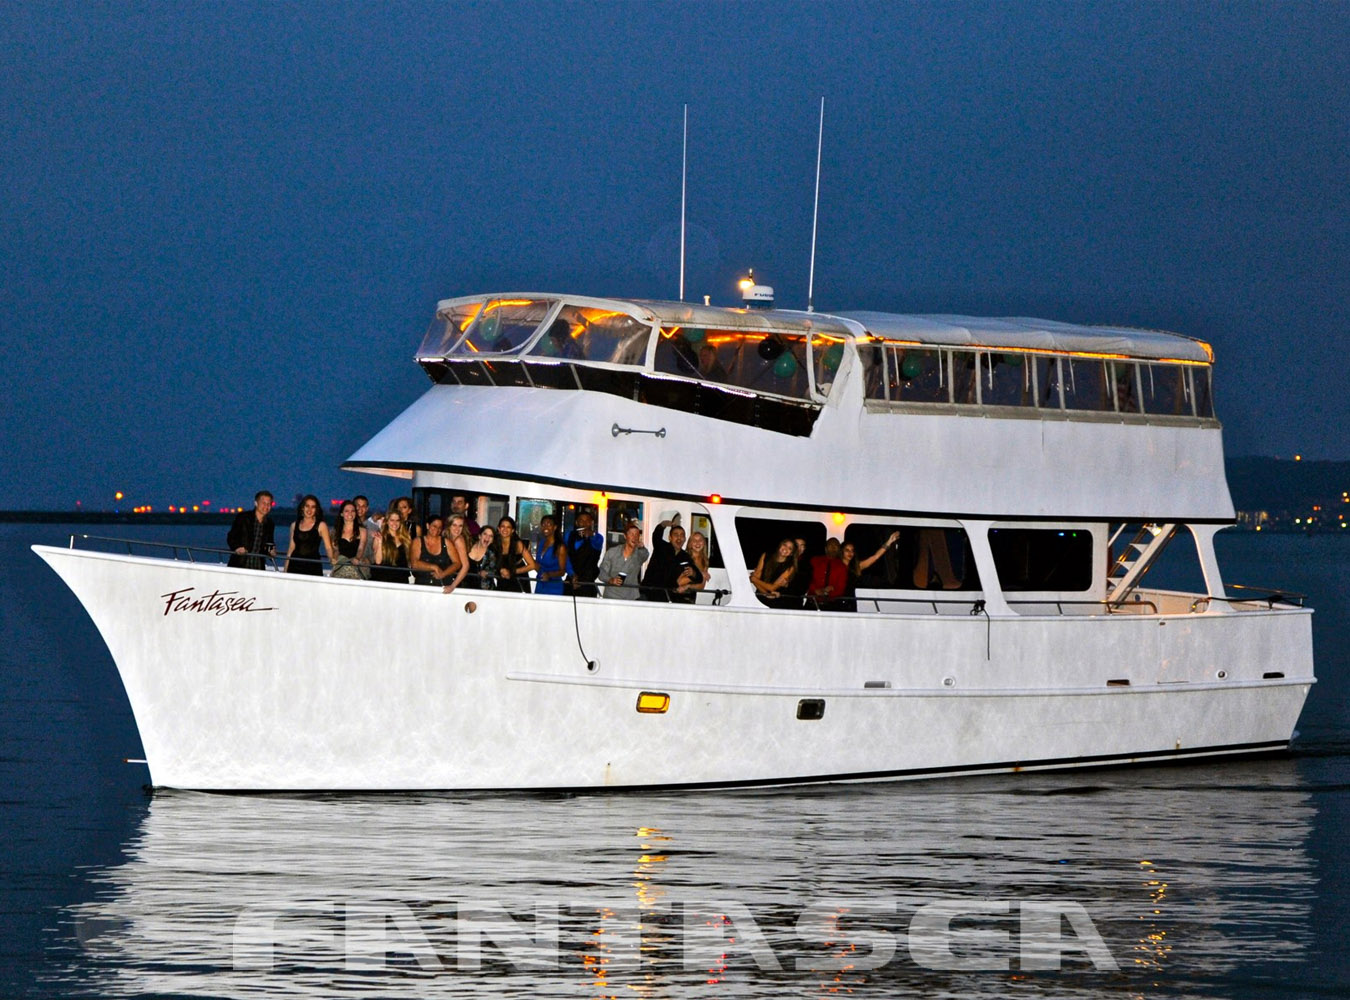 Yacht Fantasea Charters Offers Two San Diego Fun Boats For